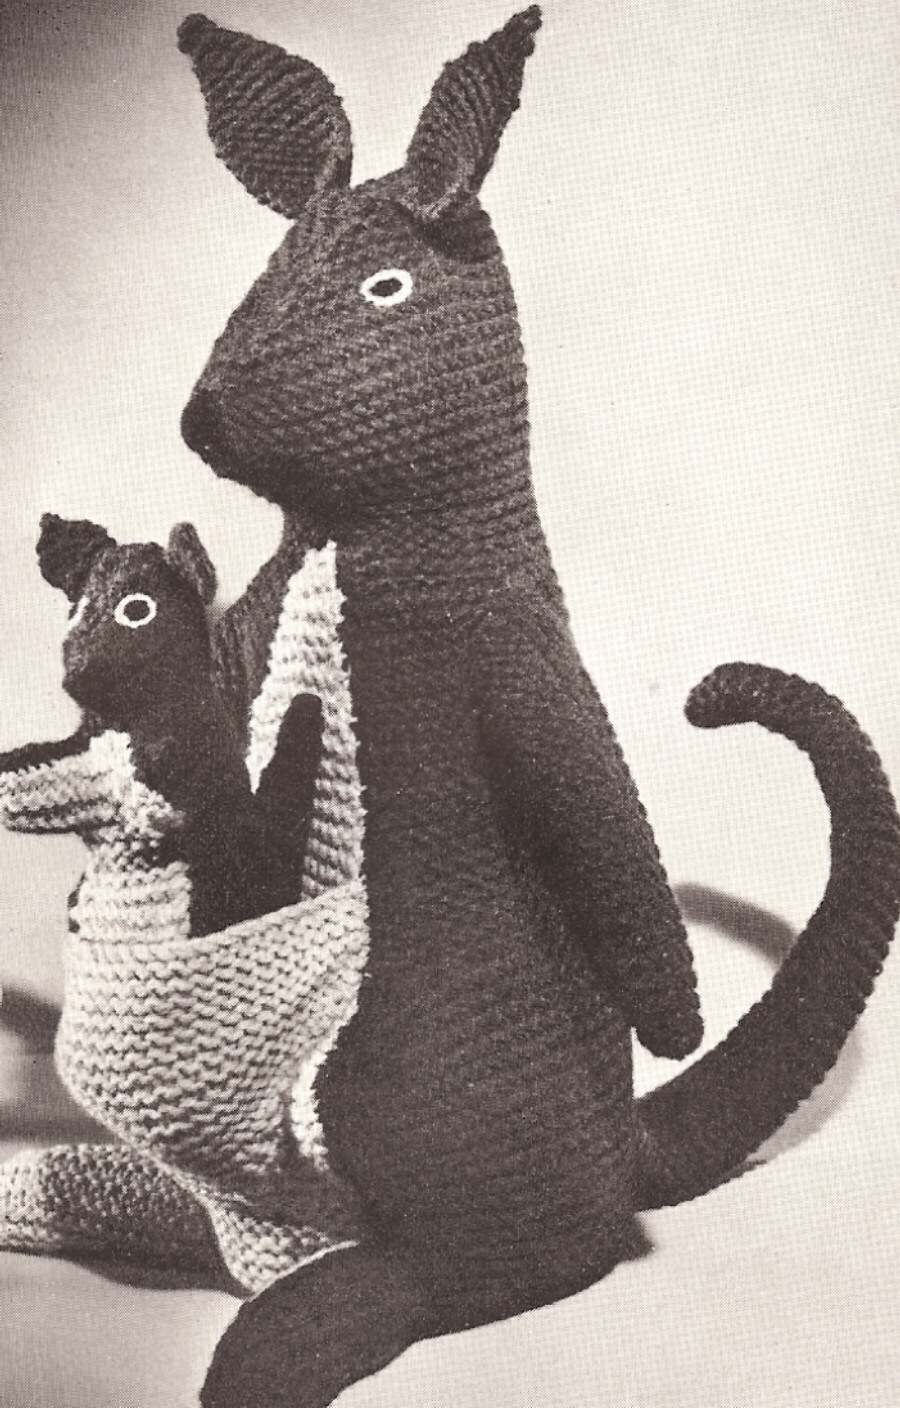 Kangaroo Pouch Knitting Pattern : Kangaroos Stuffed Animal Toy Knitting Pattern Vintage eBay